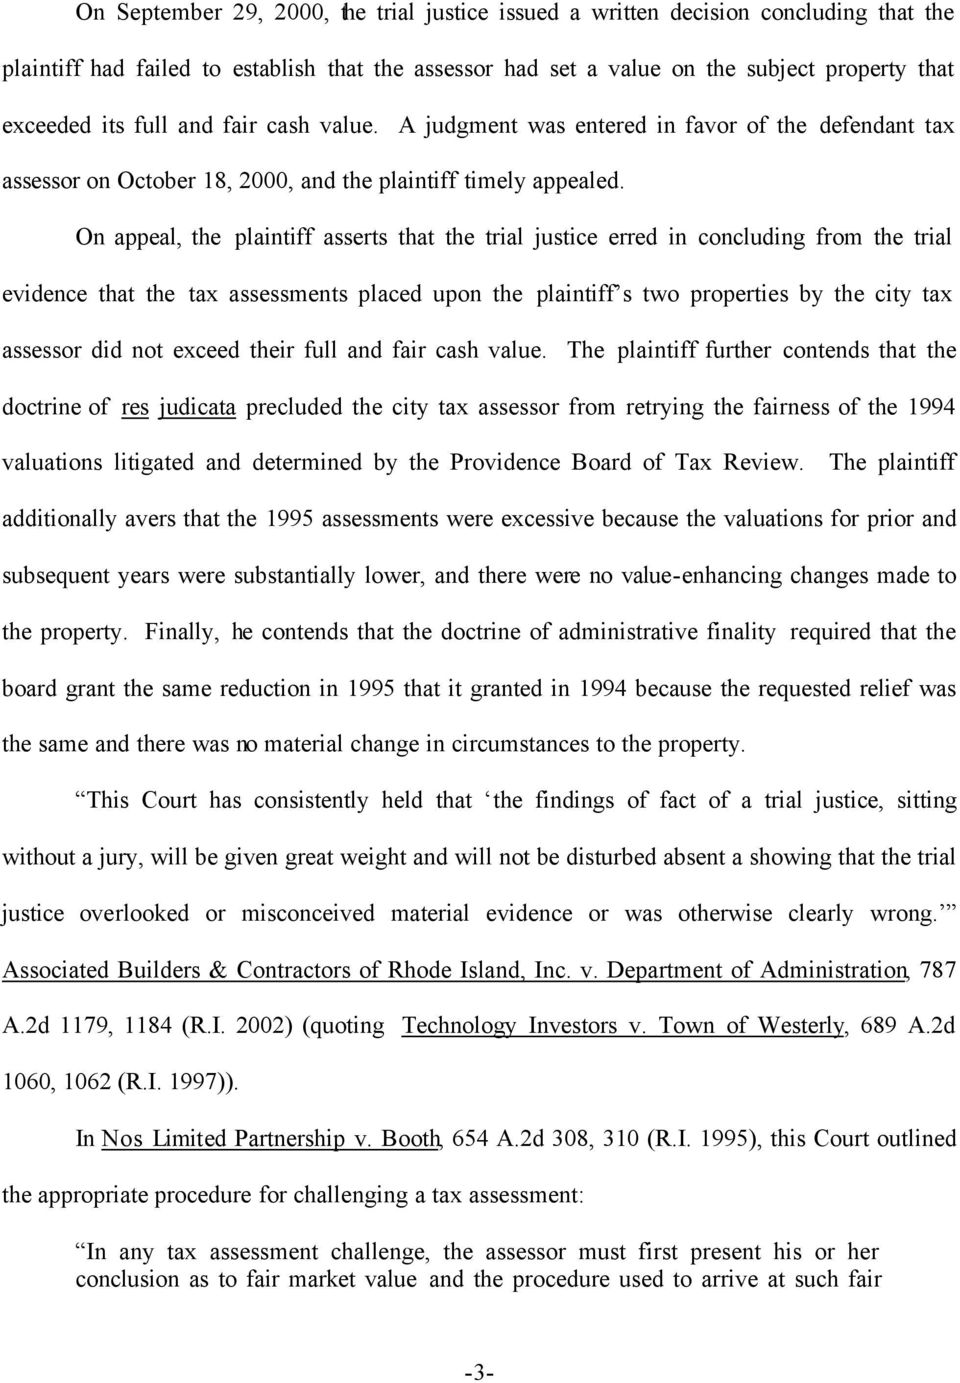 On appeal, the plaintiff asserts that the trial justice erred in concluding from the trial evidence that the tax assessments placed upon the plaintiff s two properties by the city tax assessor did